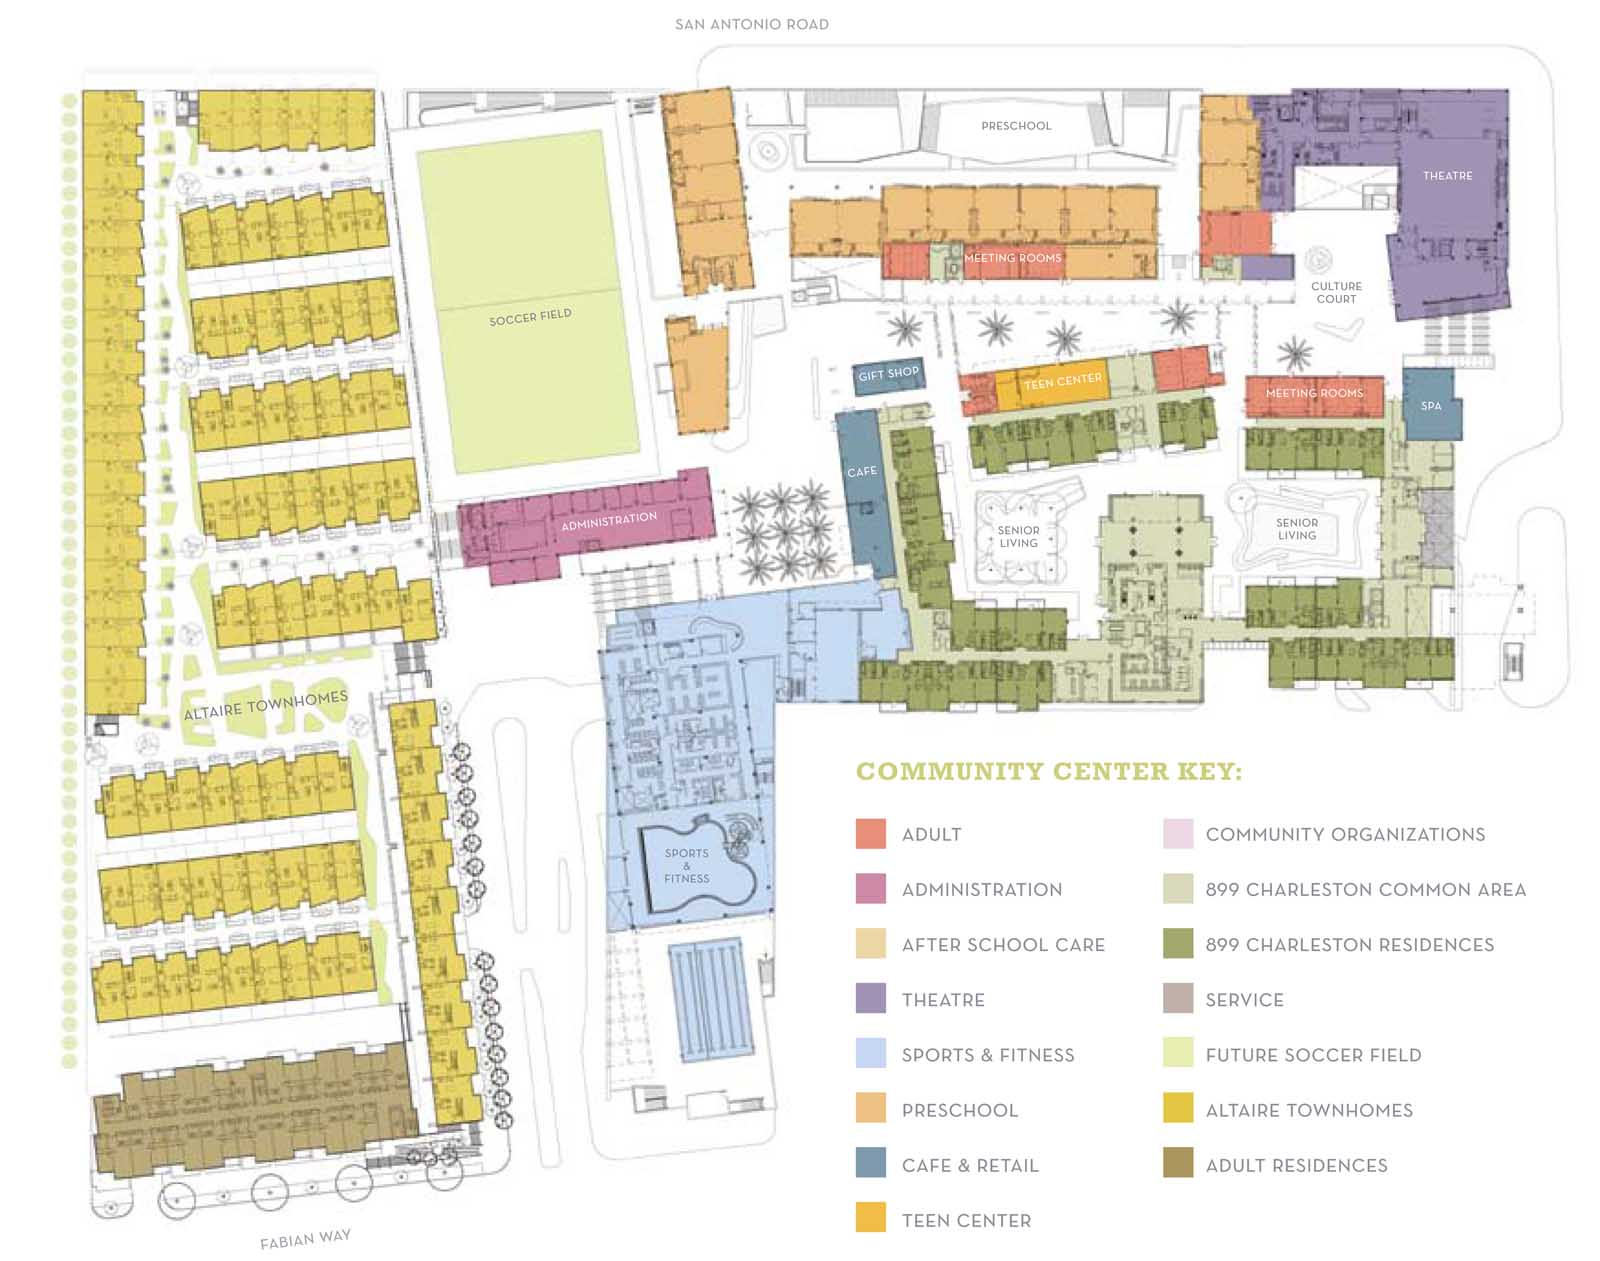 Image shows the entire layout of Altaire residences in yellow on the left, and the rest of the campus and fitness center on the right. (Click image to enlarge.)